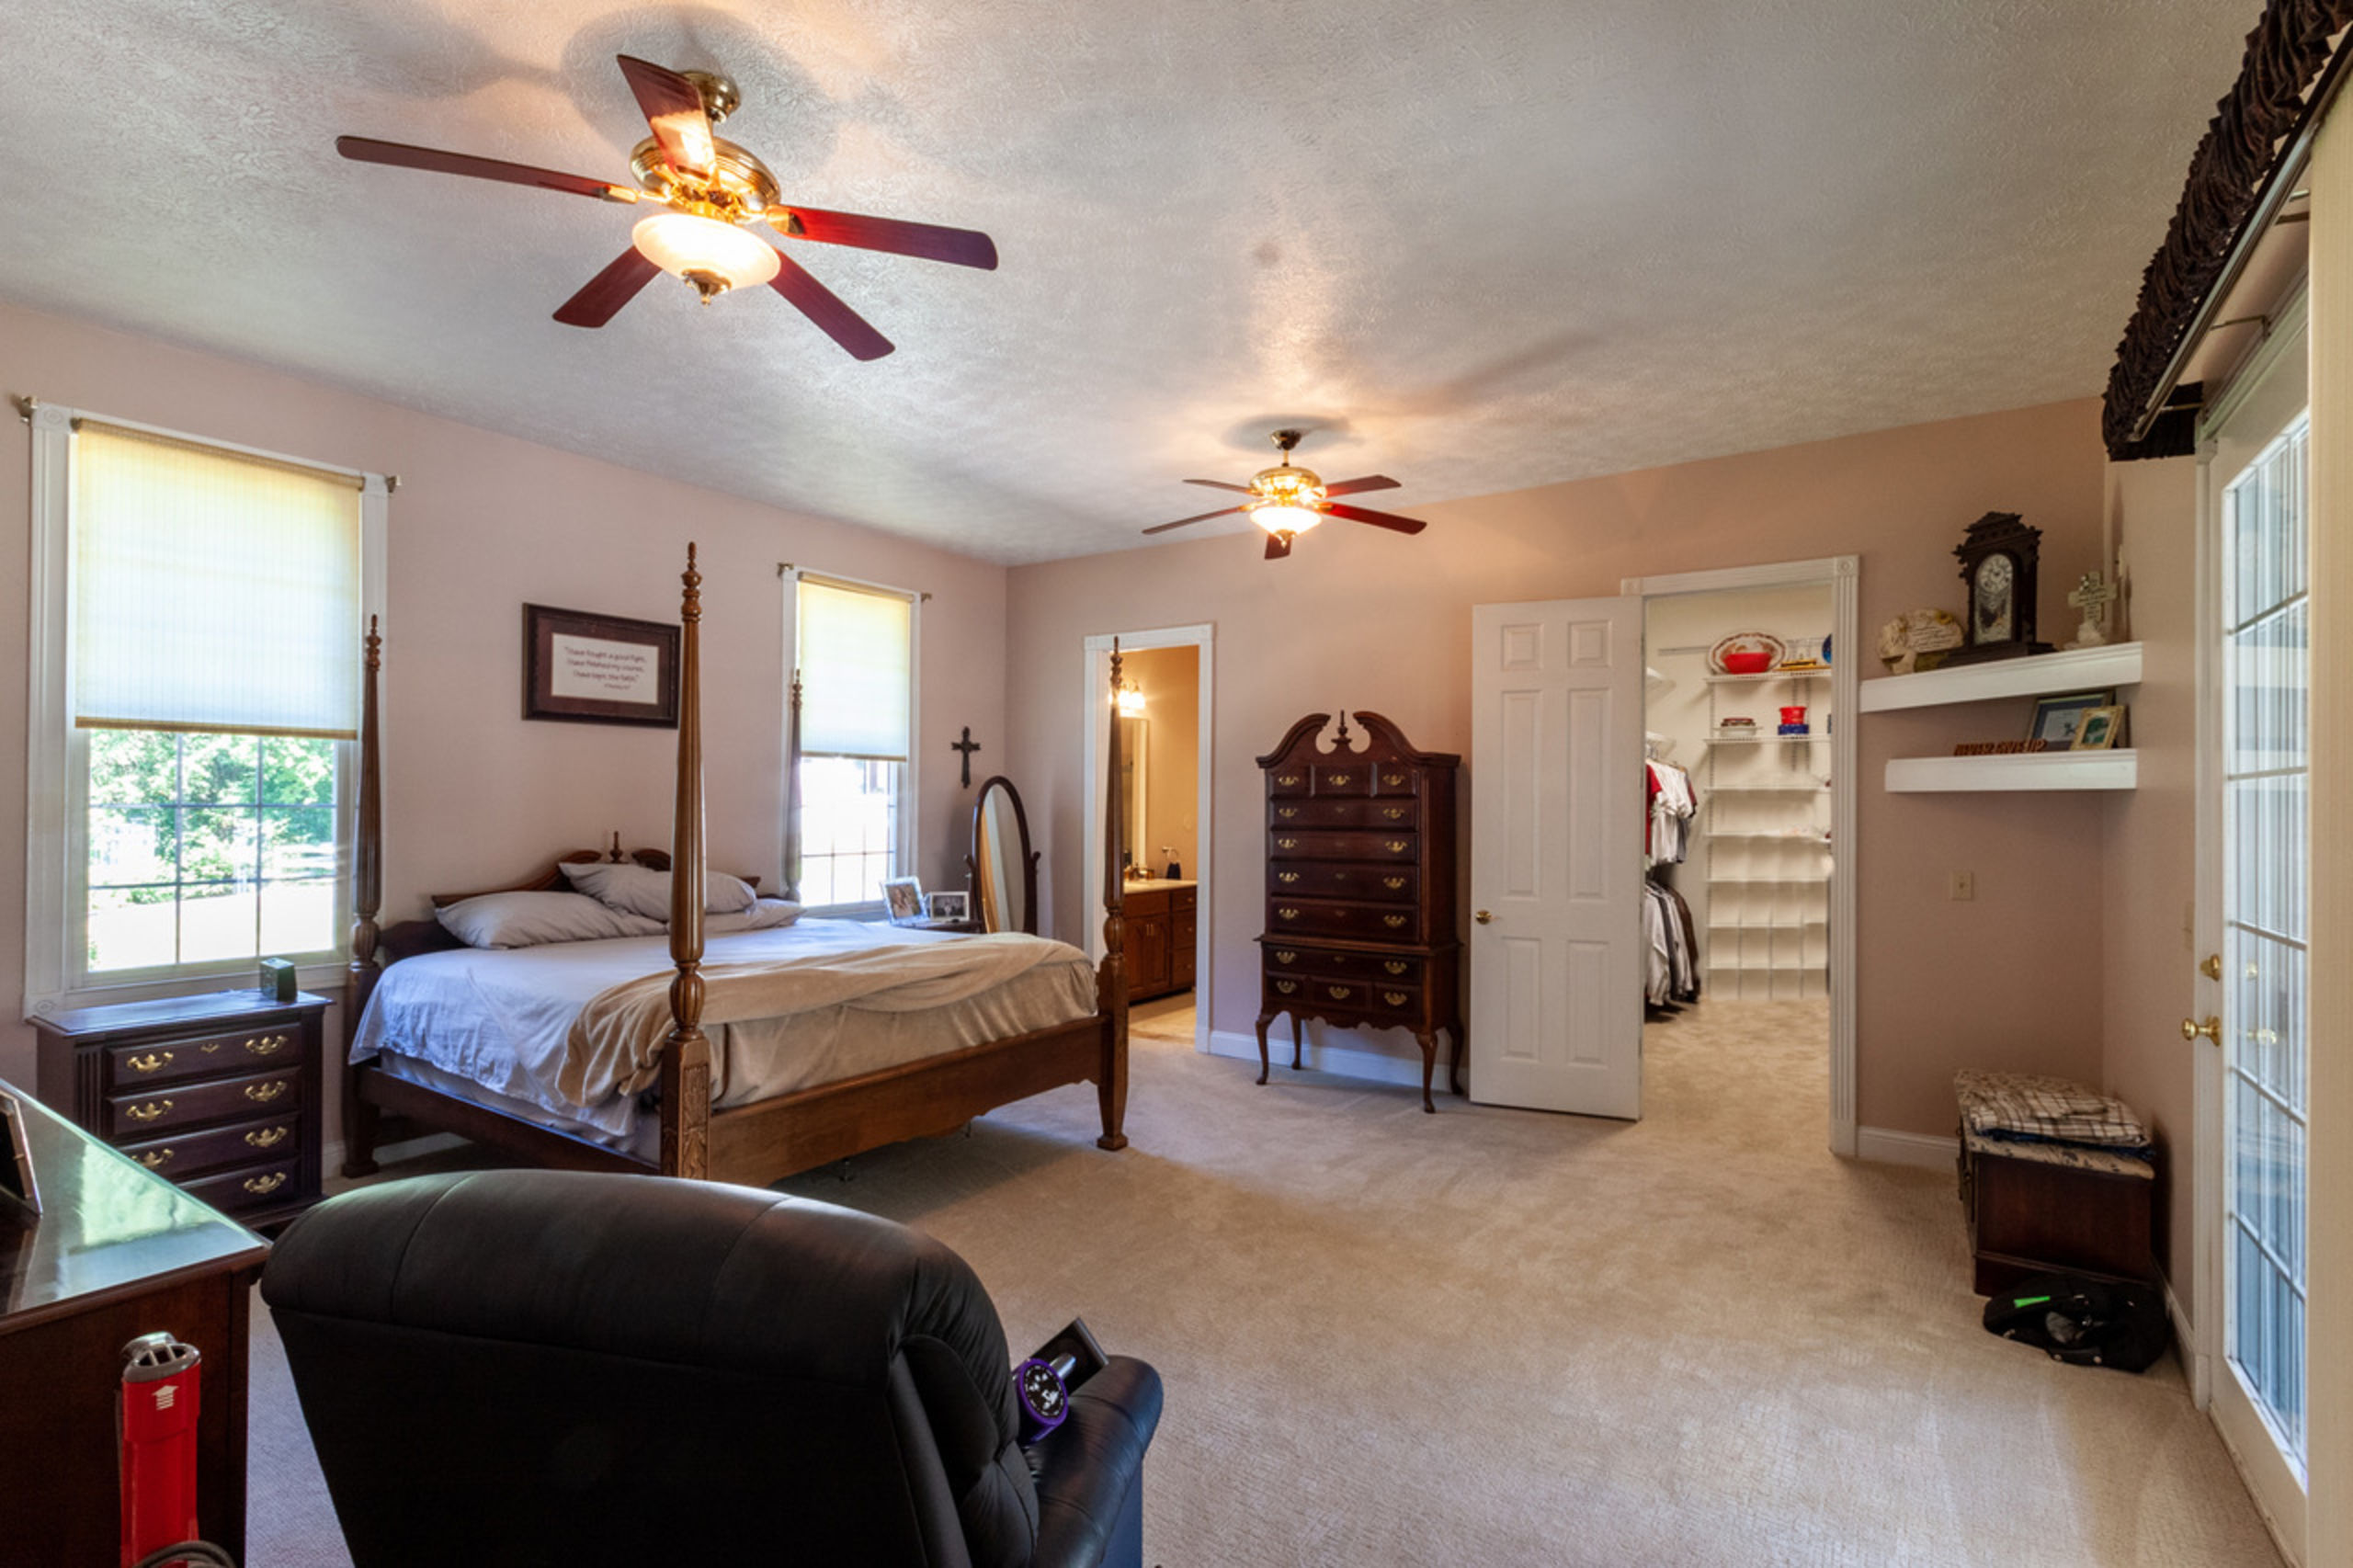 Massive primary bedroom w/large en-suite, huge walk-in closet & private patio/pool access